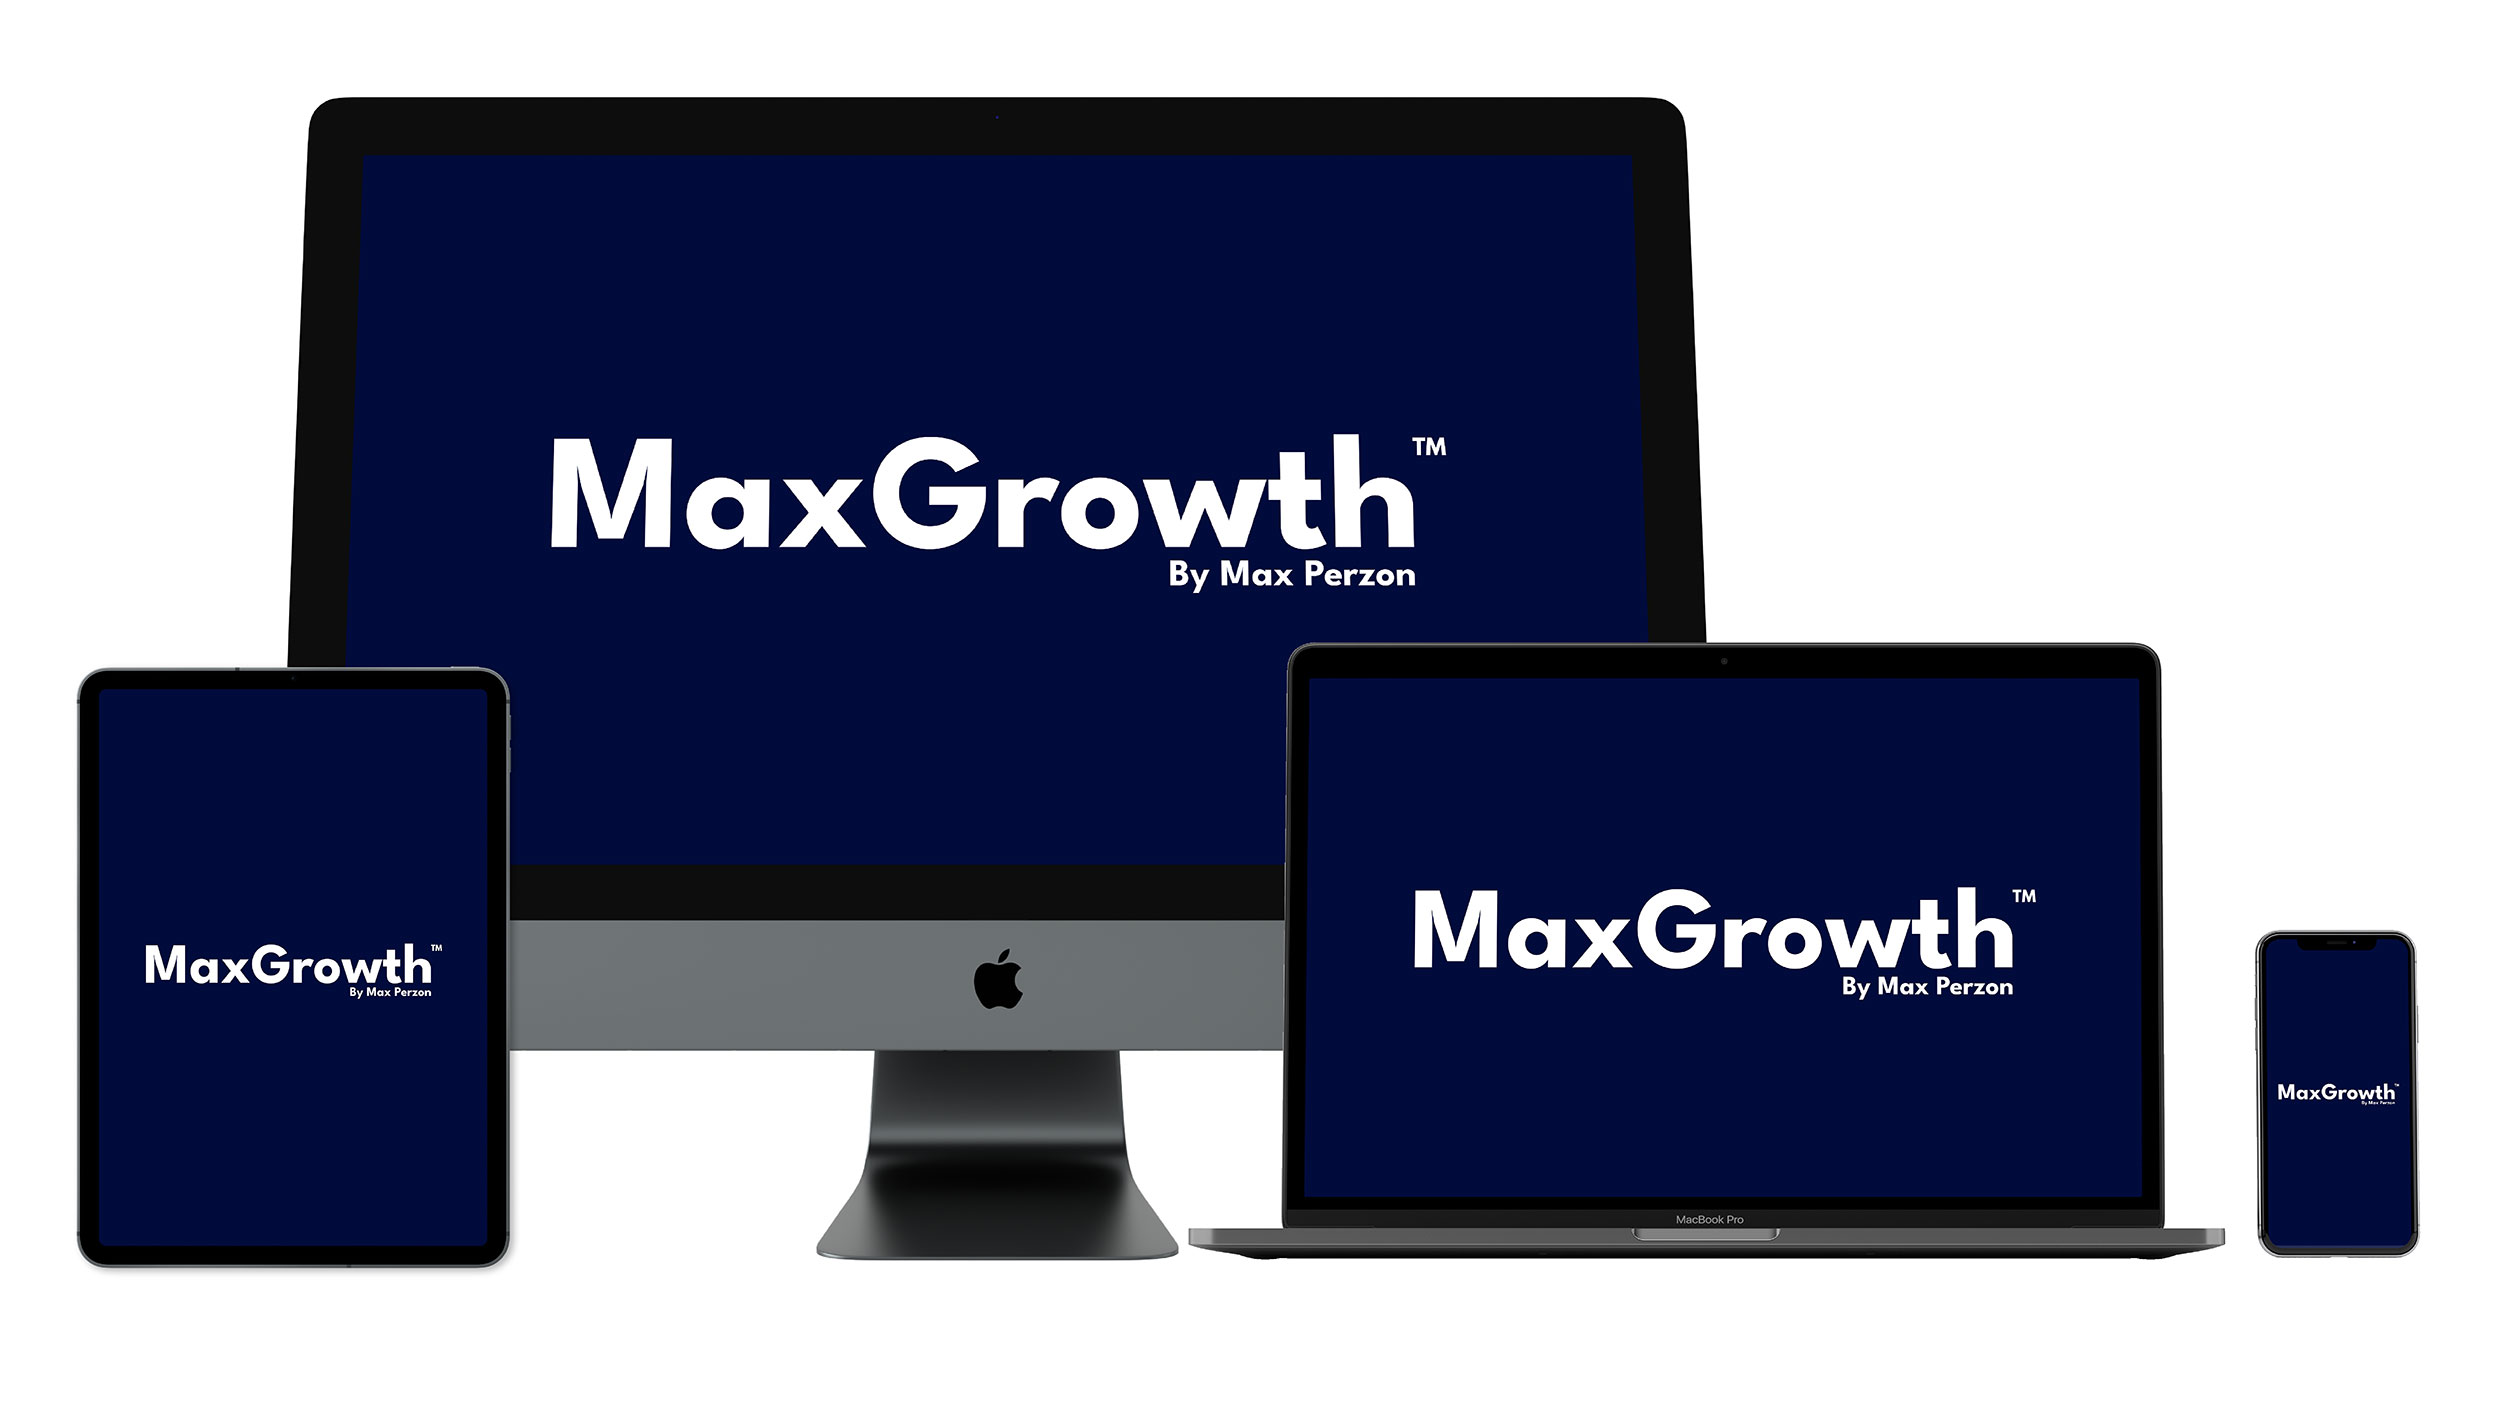 MaxGrowth-devices